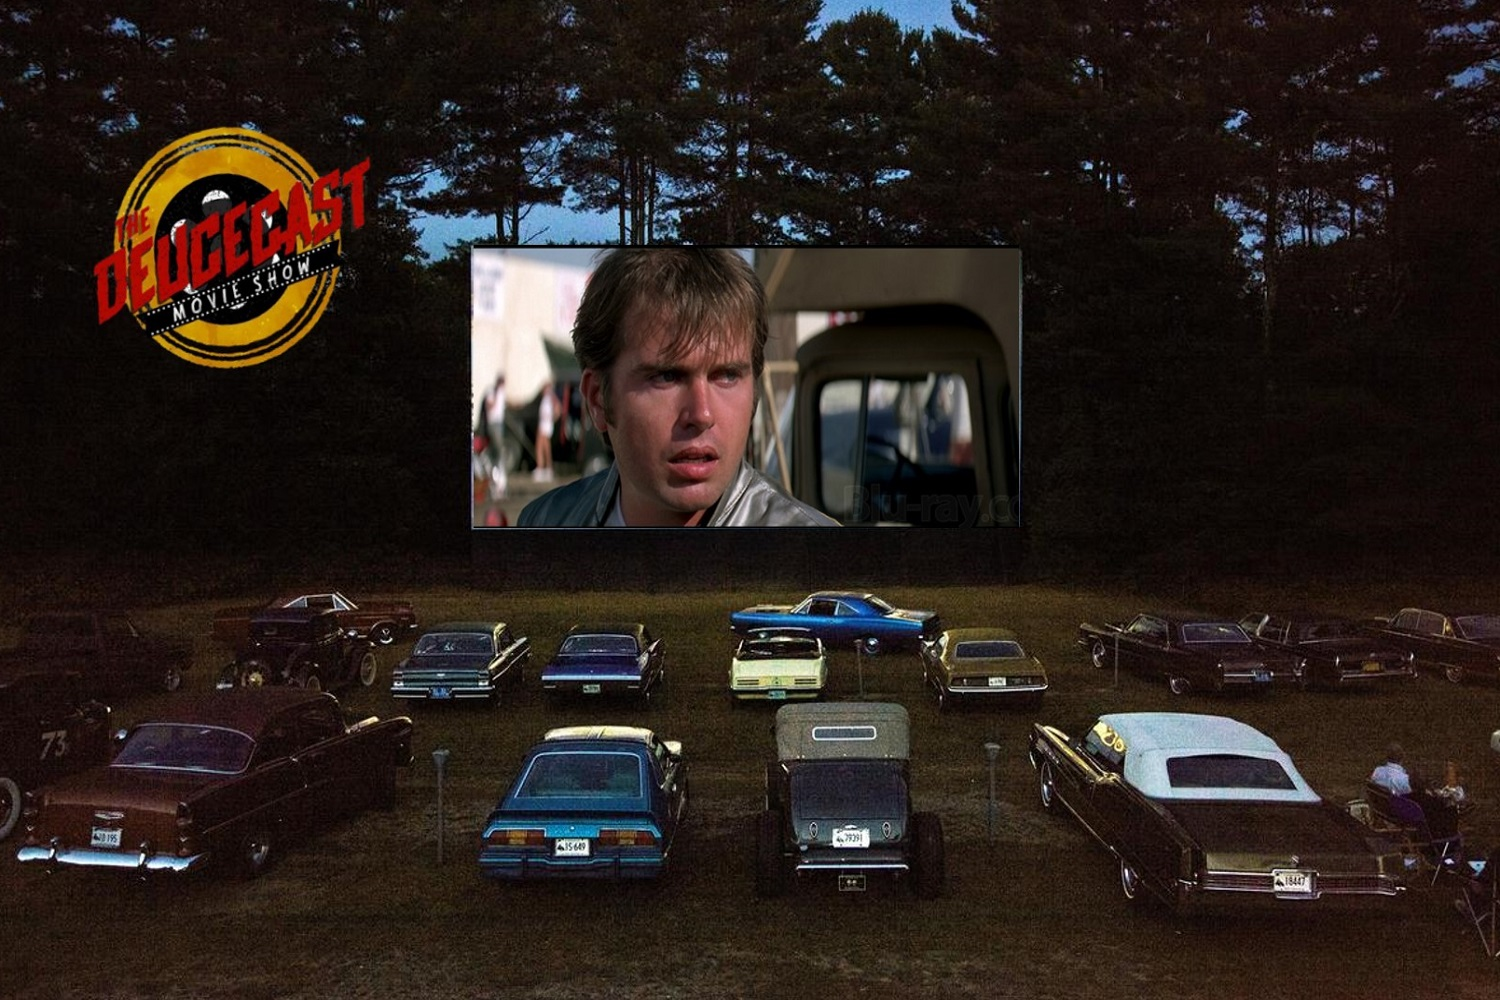 The Deucecast Movie Show #442: Best of the Worst 1970s